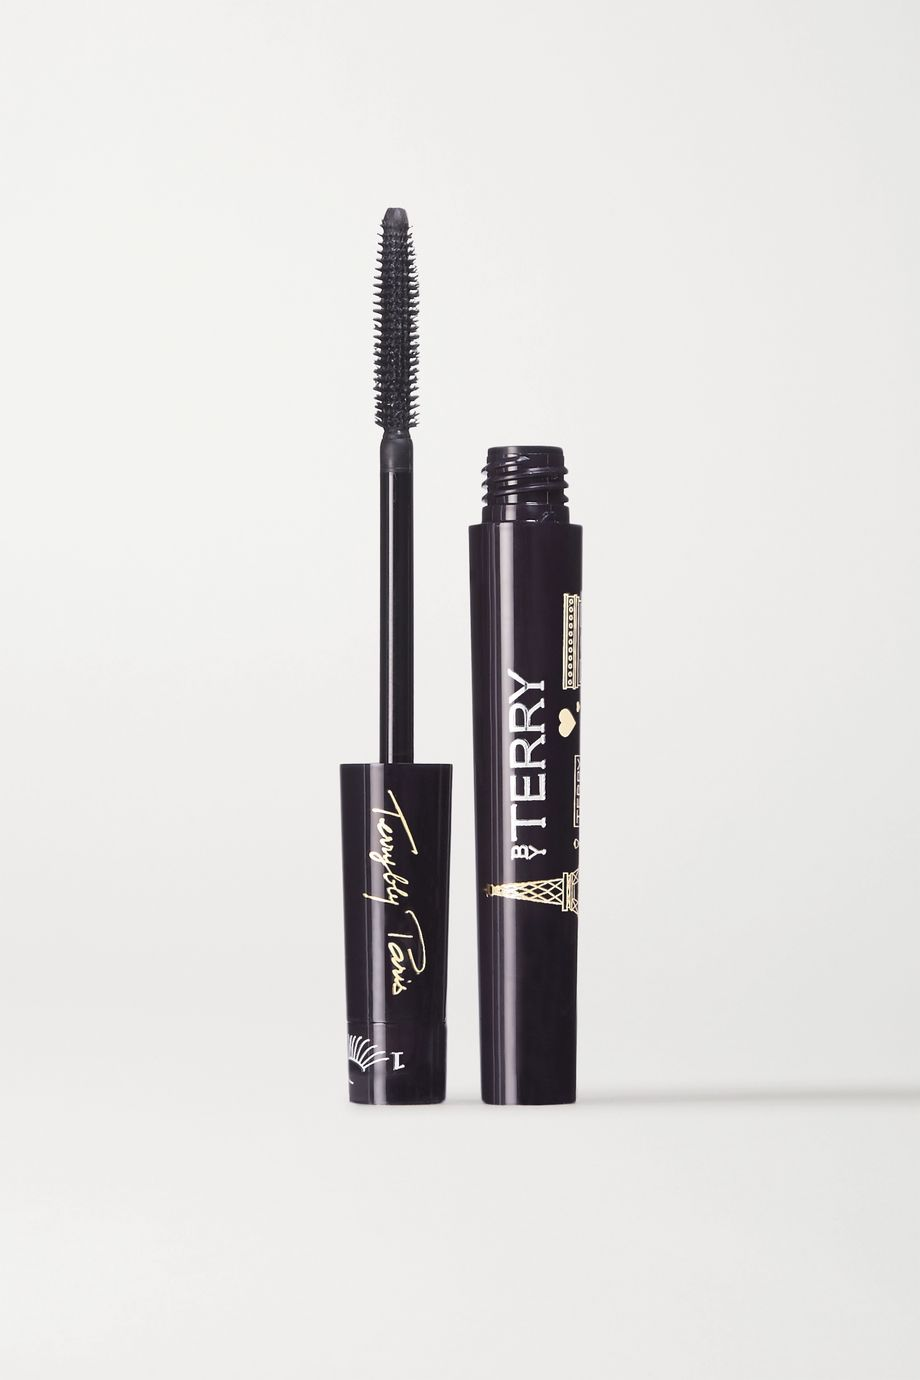 BY TERRY Lash-Expert Twist Brush Double Effect Mascara - Terrybly Paris